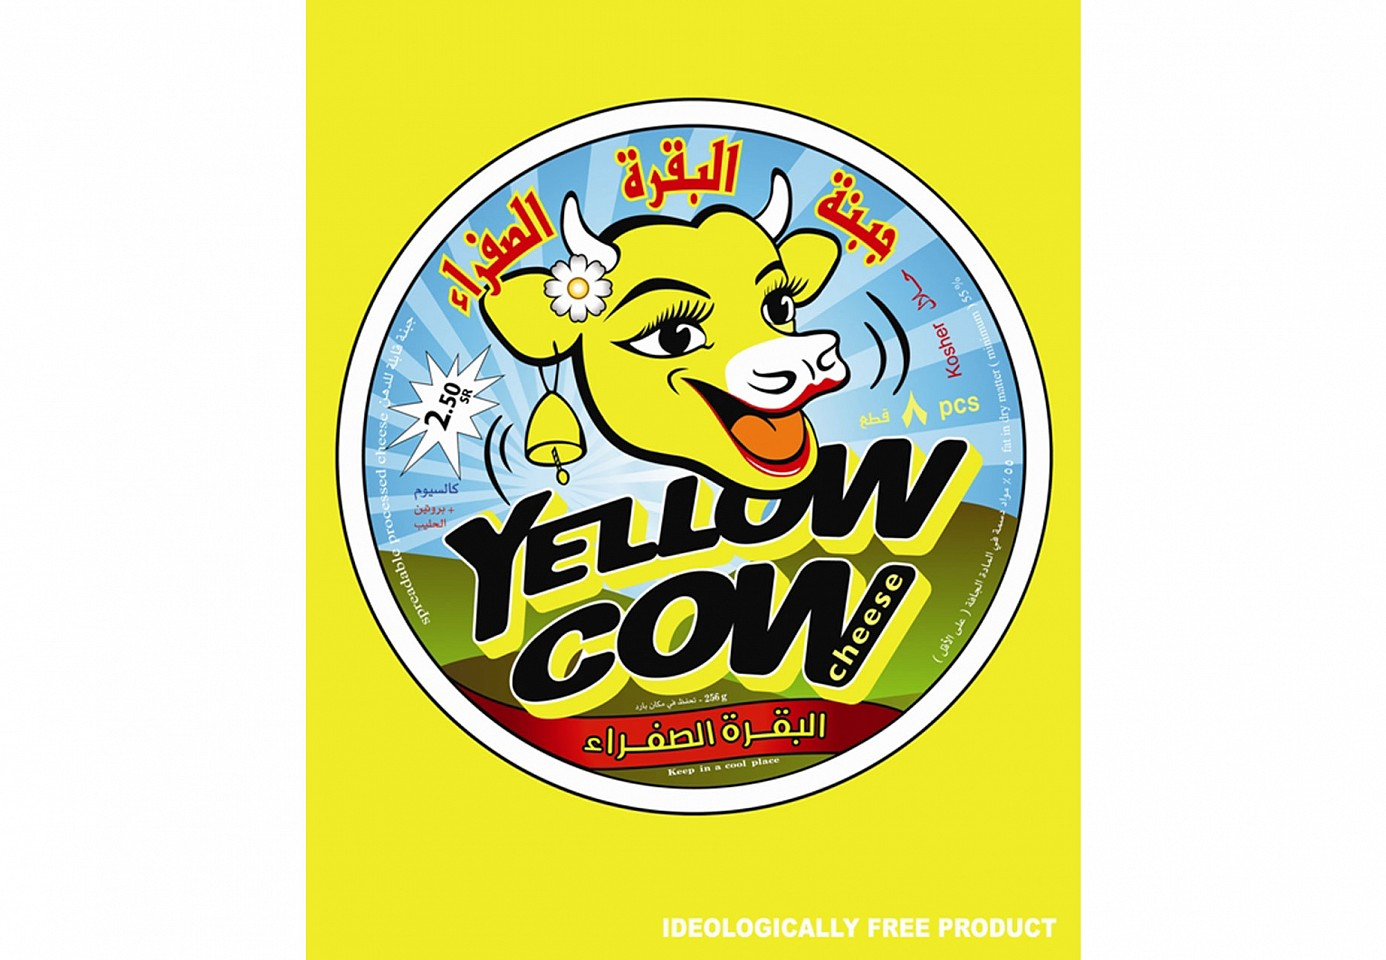 "<p><span class=""viewer-caption-artist"">Ahmed Mater</span></p> <p><span class=""viewer-caption-title""><i>Yellow Cow Poster</i></span>, <span class=""viewer-caption-year"">2010</span></p> <p><span class=""viewer-caption-media"">Mixed Media</span></p> <p><span class=""viewer-caption-dimensions"">142 x 114 cm (55 7/8 x 44 7/8 in.)</span></p> <p><span class=""viewer-caption-description"">Edition of 35</span></p> <p><span class=""viewer-caption-inventory"">AHM0001</span></p> <p><span class=""viewer-caption-aux""></span></p>"